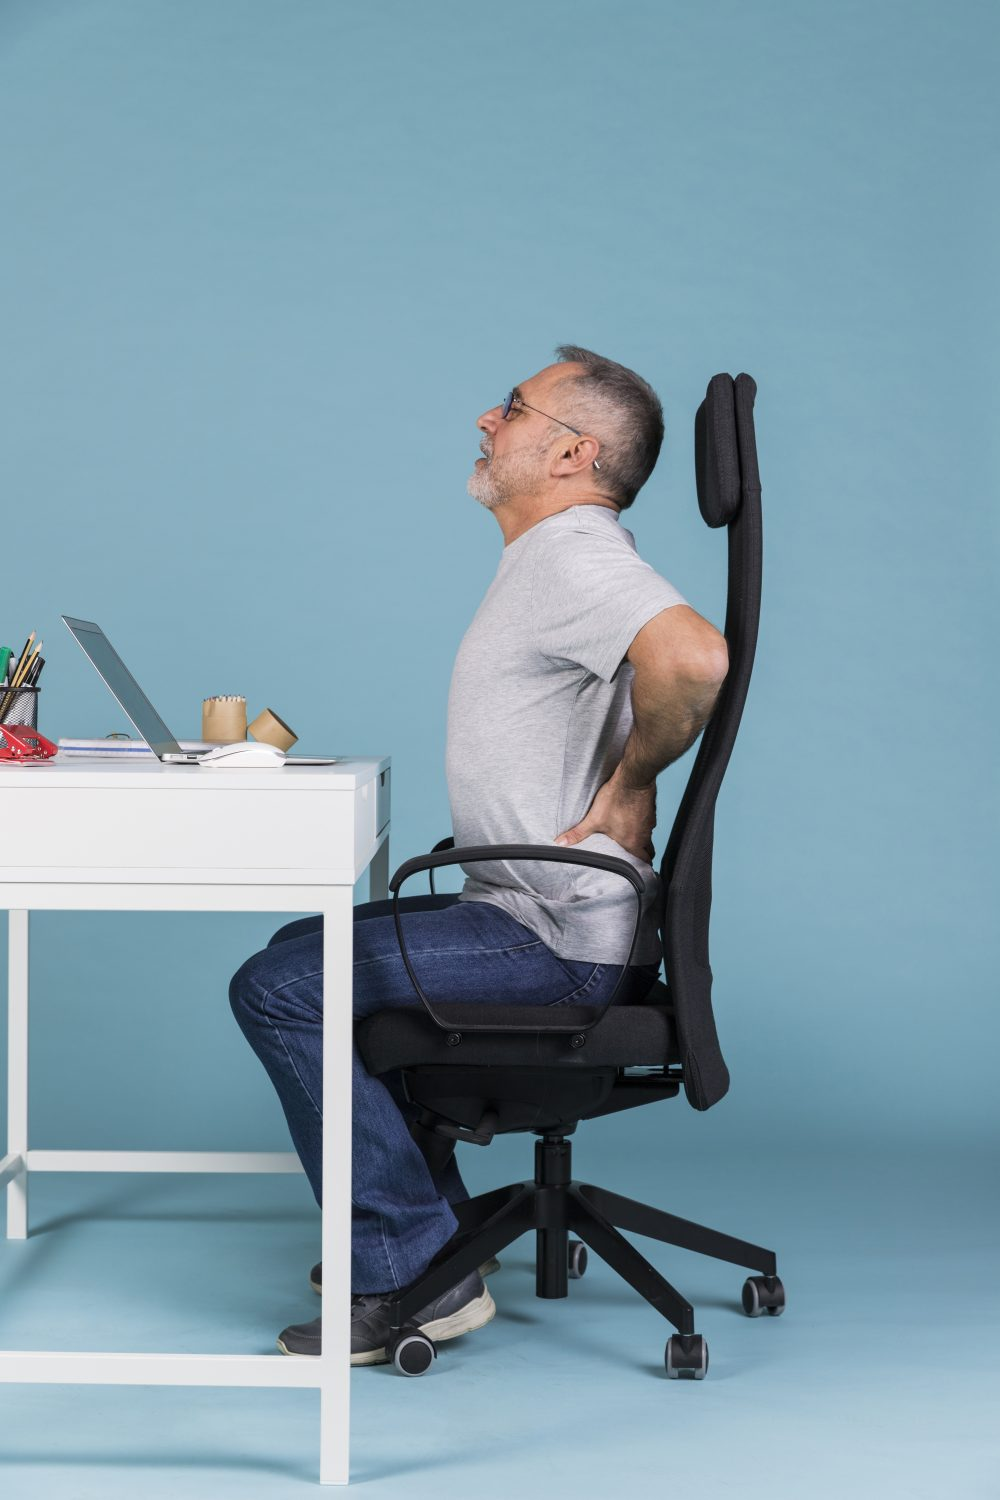 How to Reduce Back Pain at Work  How To Prevent Back Pain At Work?